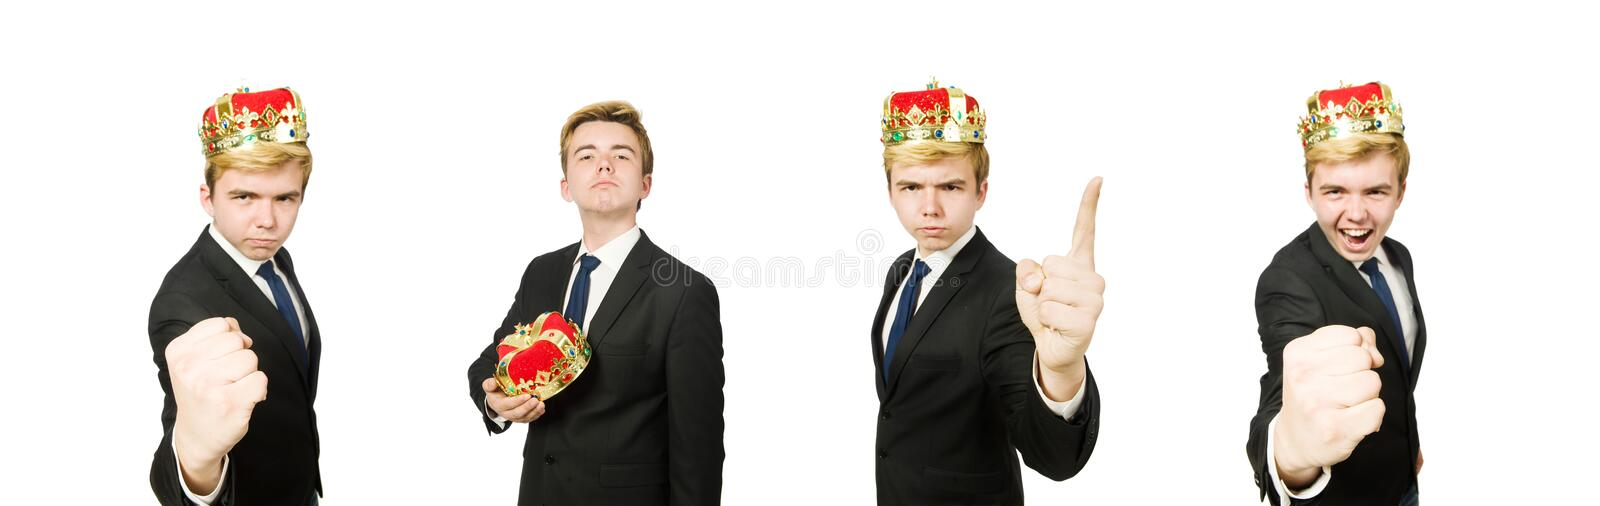 Funny businessman with crown and boxing gloves stock images